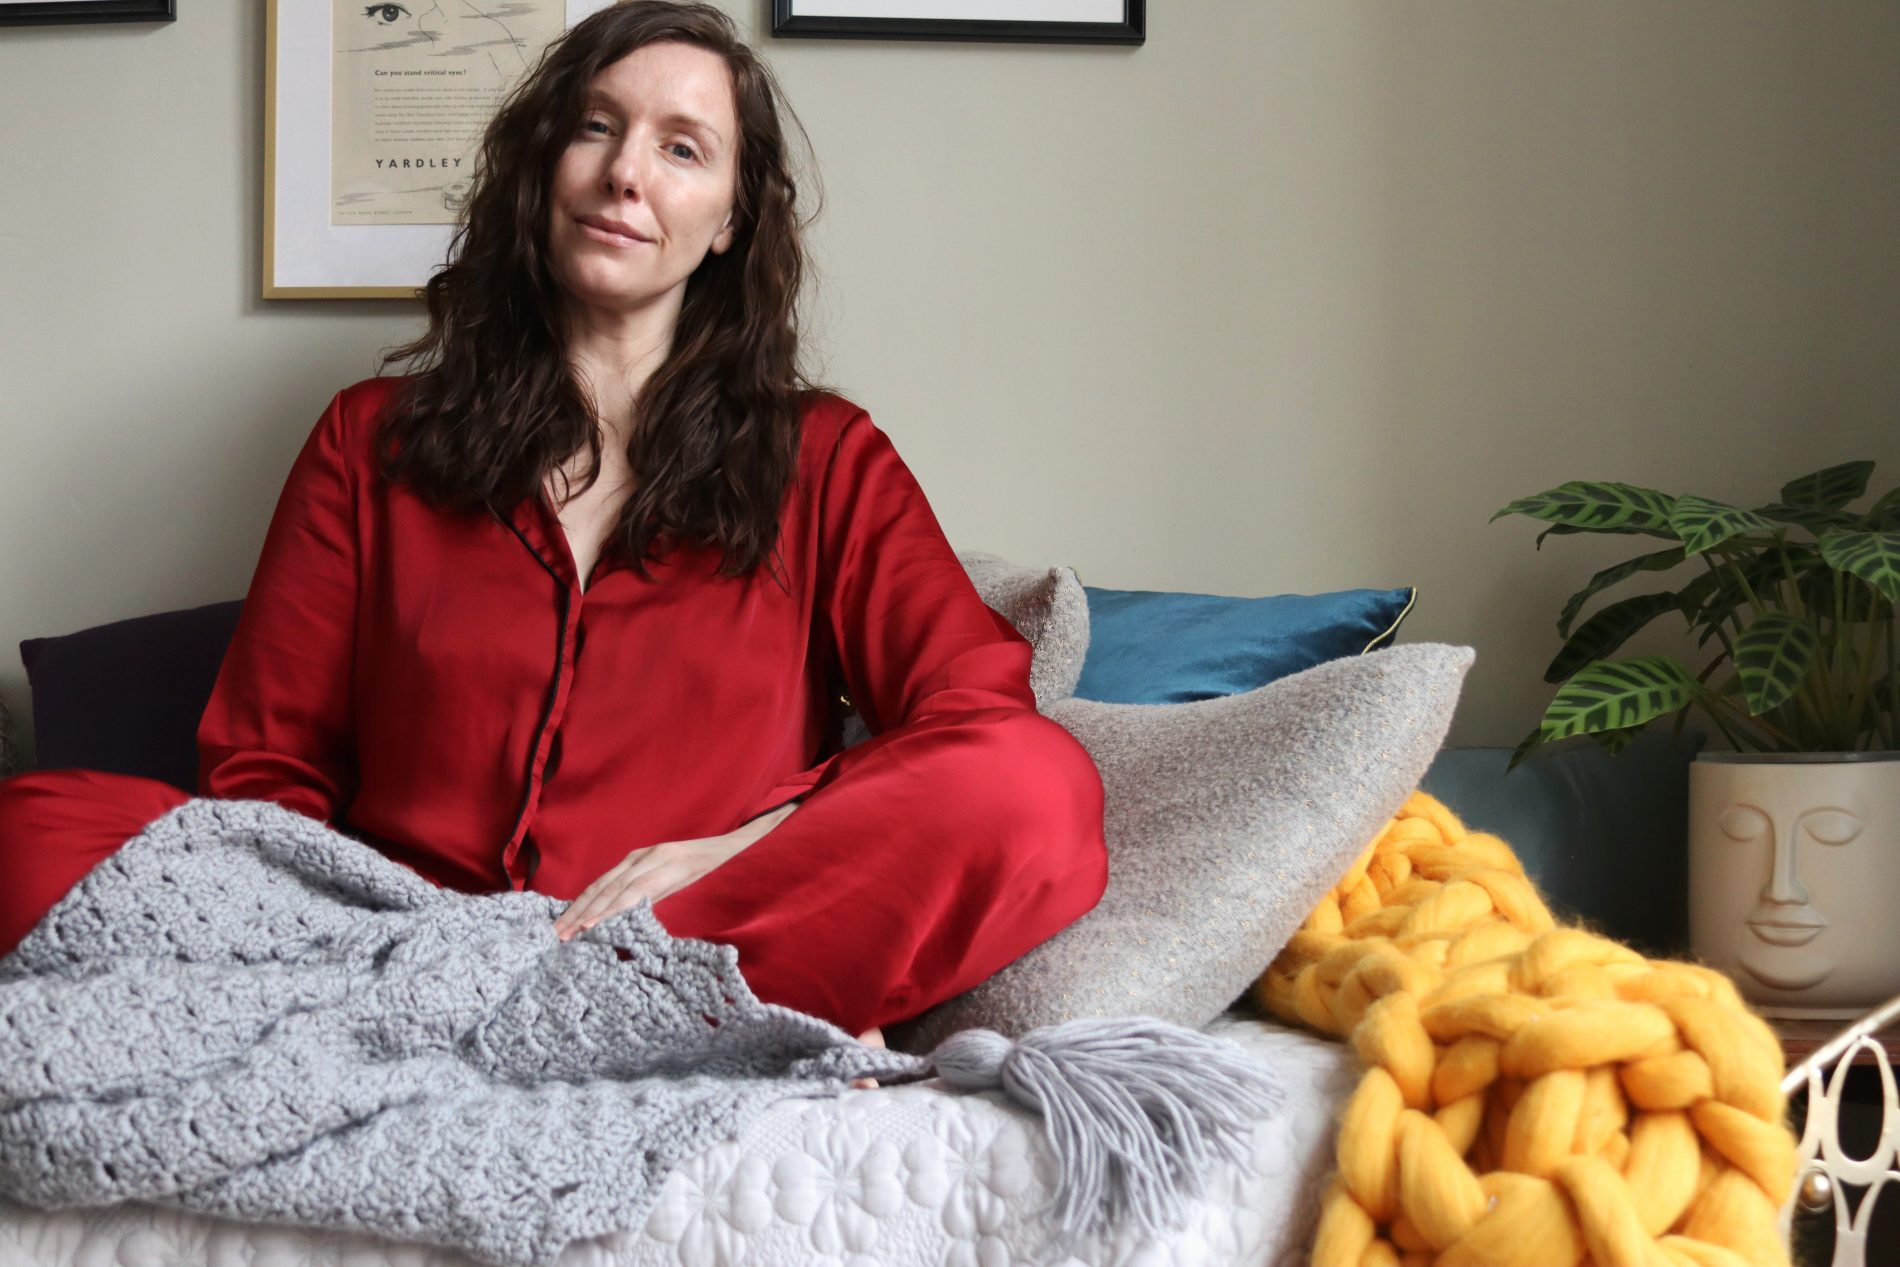 Amy a white female with brown mid length curly hair sits, supported by cushions, crossed legged on her bed covered with a throw. She has multiple invisible illness, chronic illness and is discussing the effects of the covid-19 vaccine in relation to these.